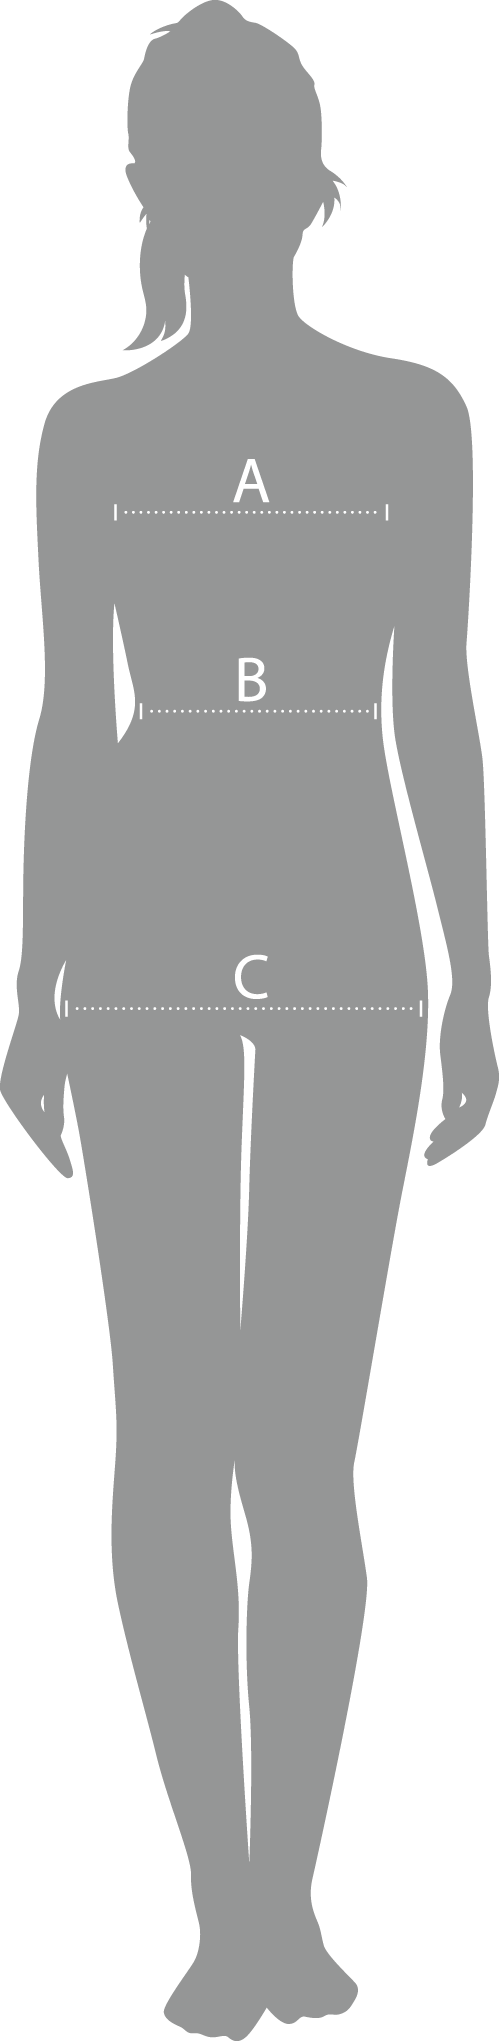 Female Body.ca7e60272bd4